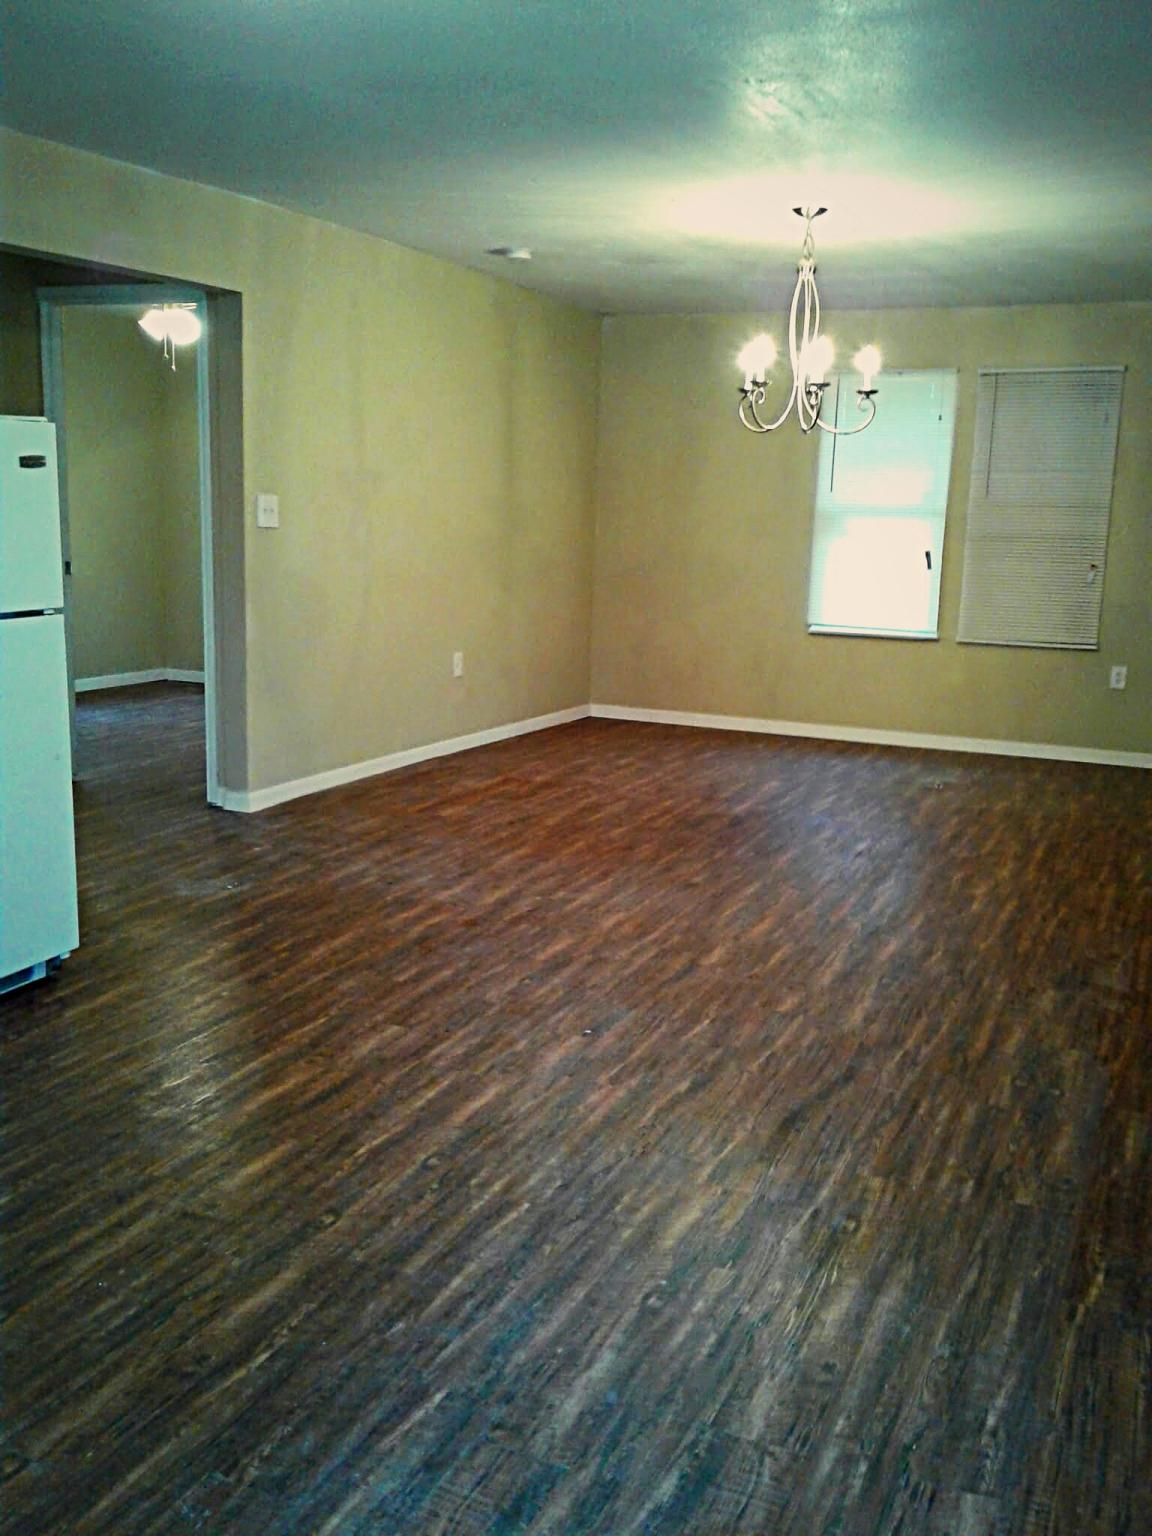 227 Elm Ave, Crosby, TX 77532 For Rent | Trulia